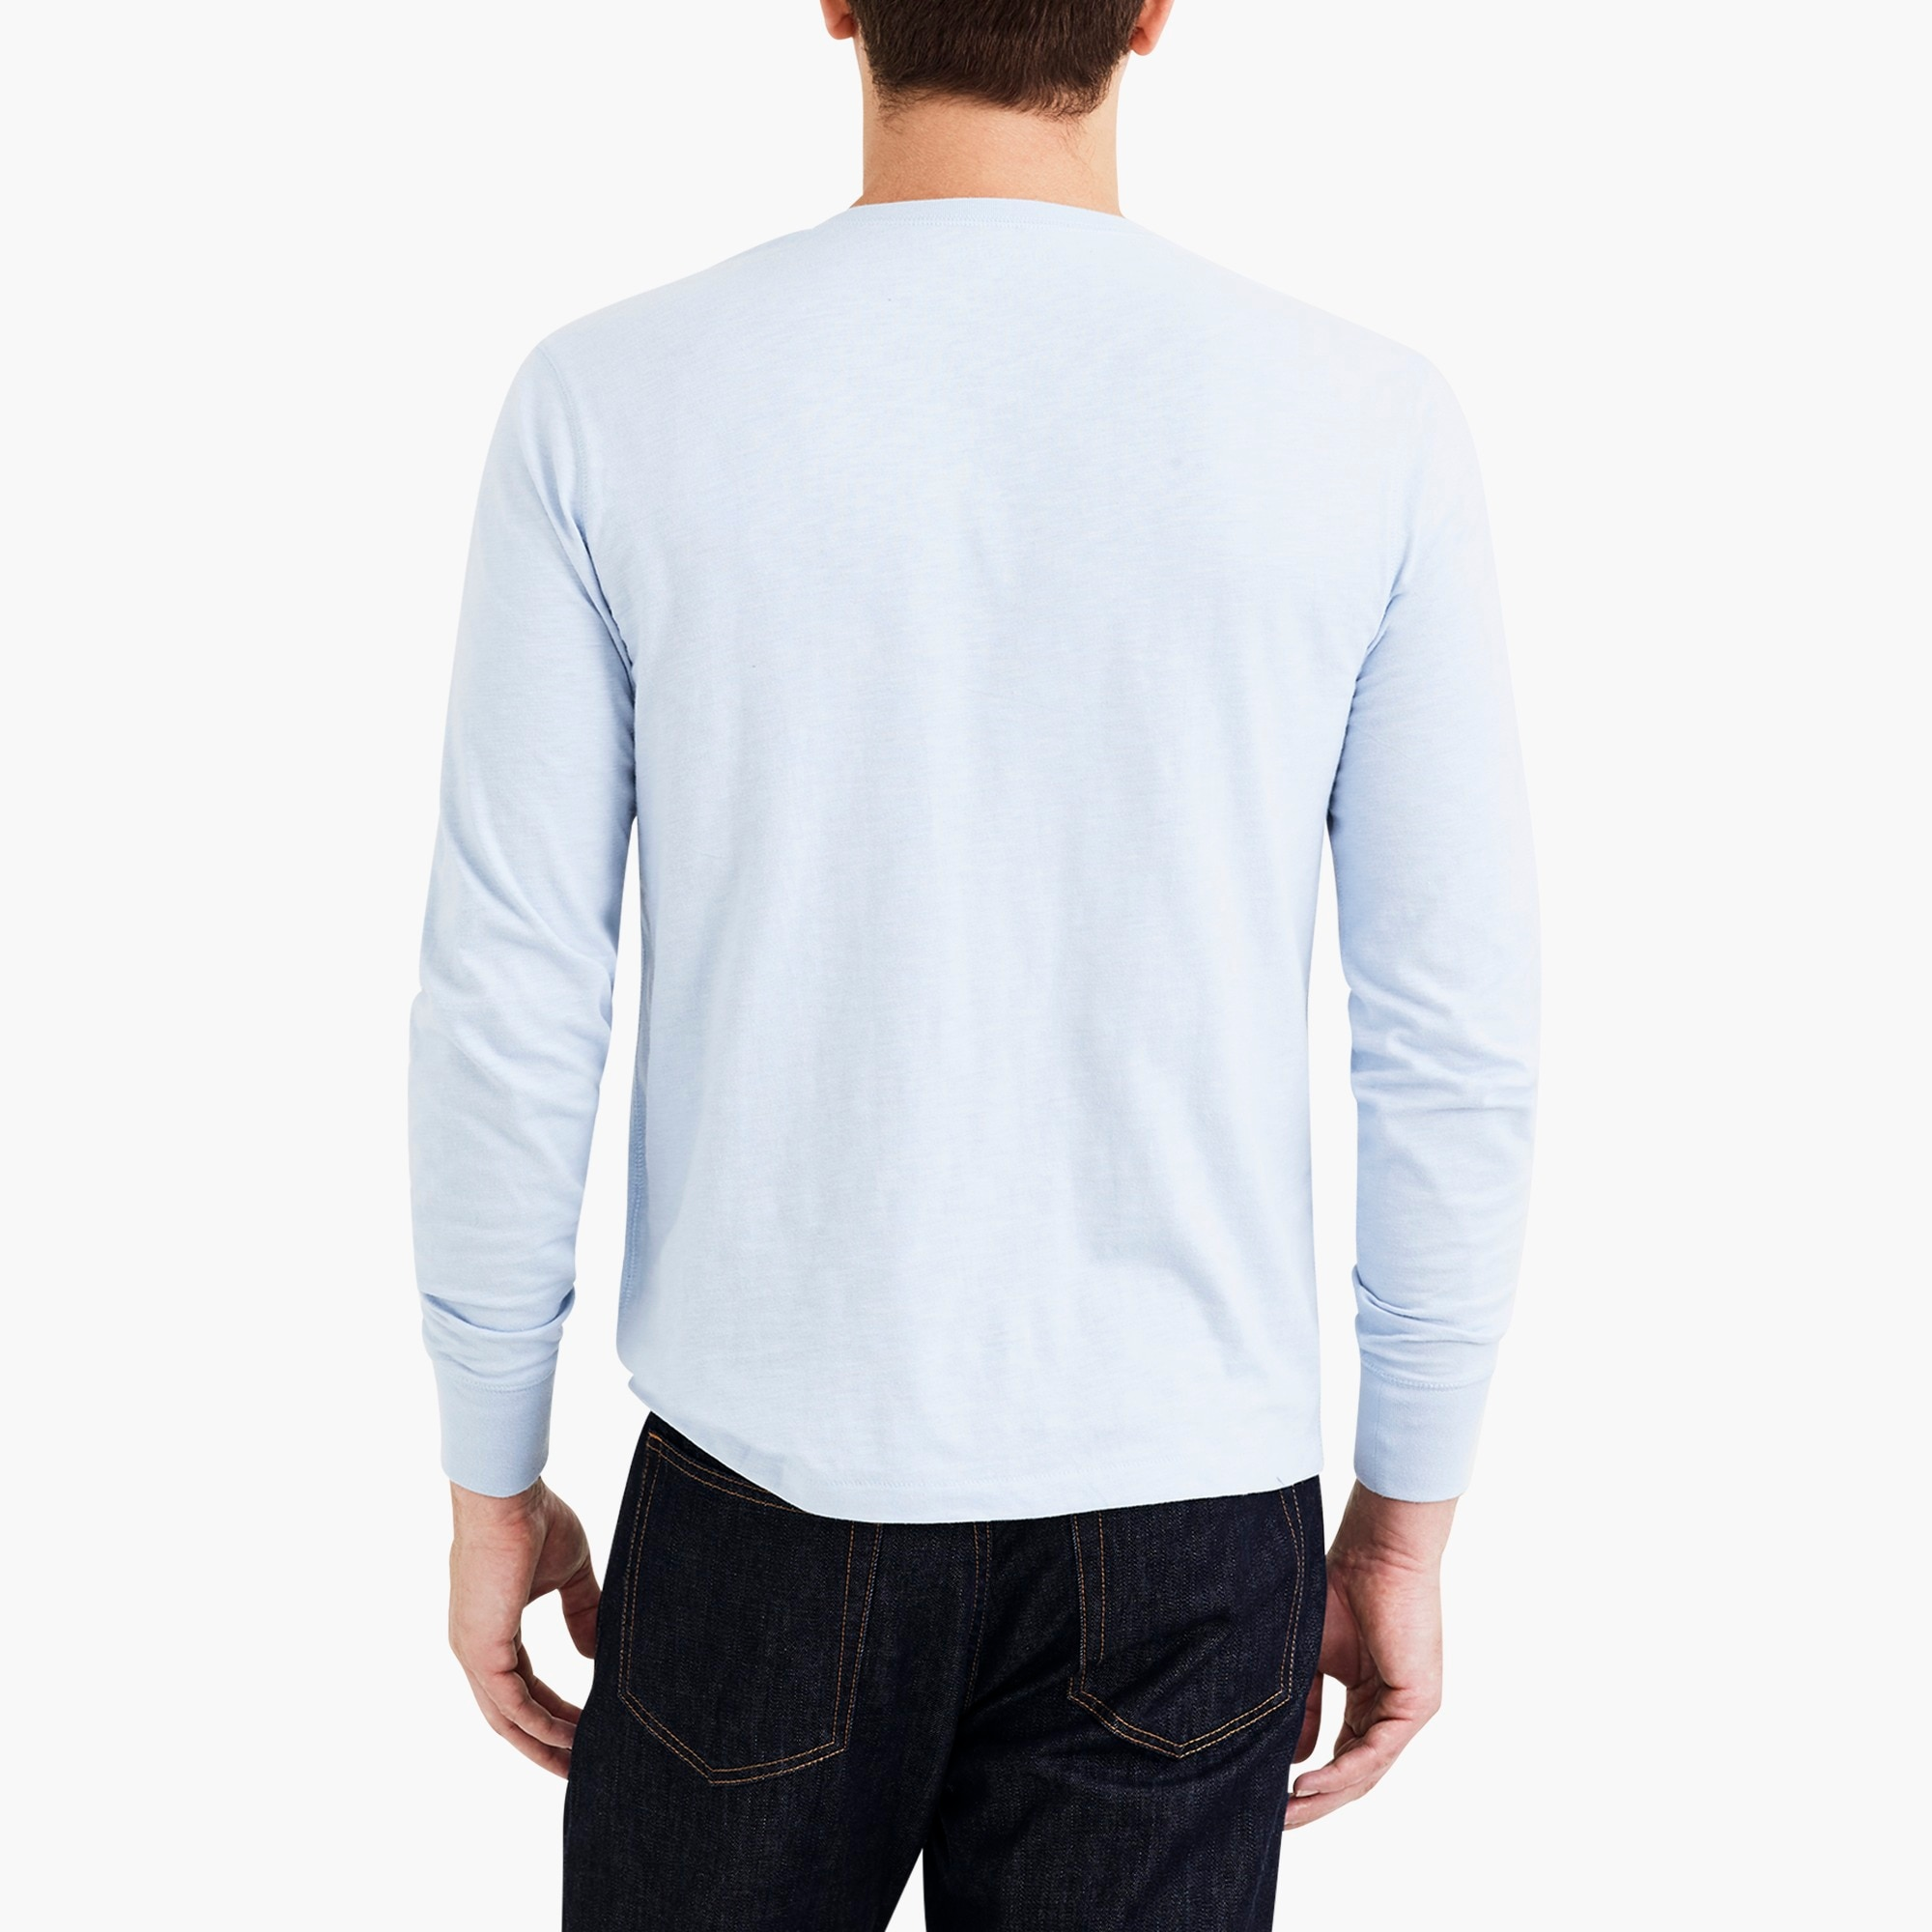 Image 2 for Long-sleeve slub cotton henley